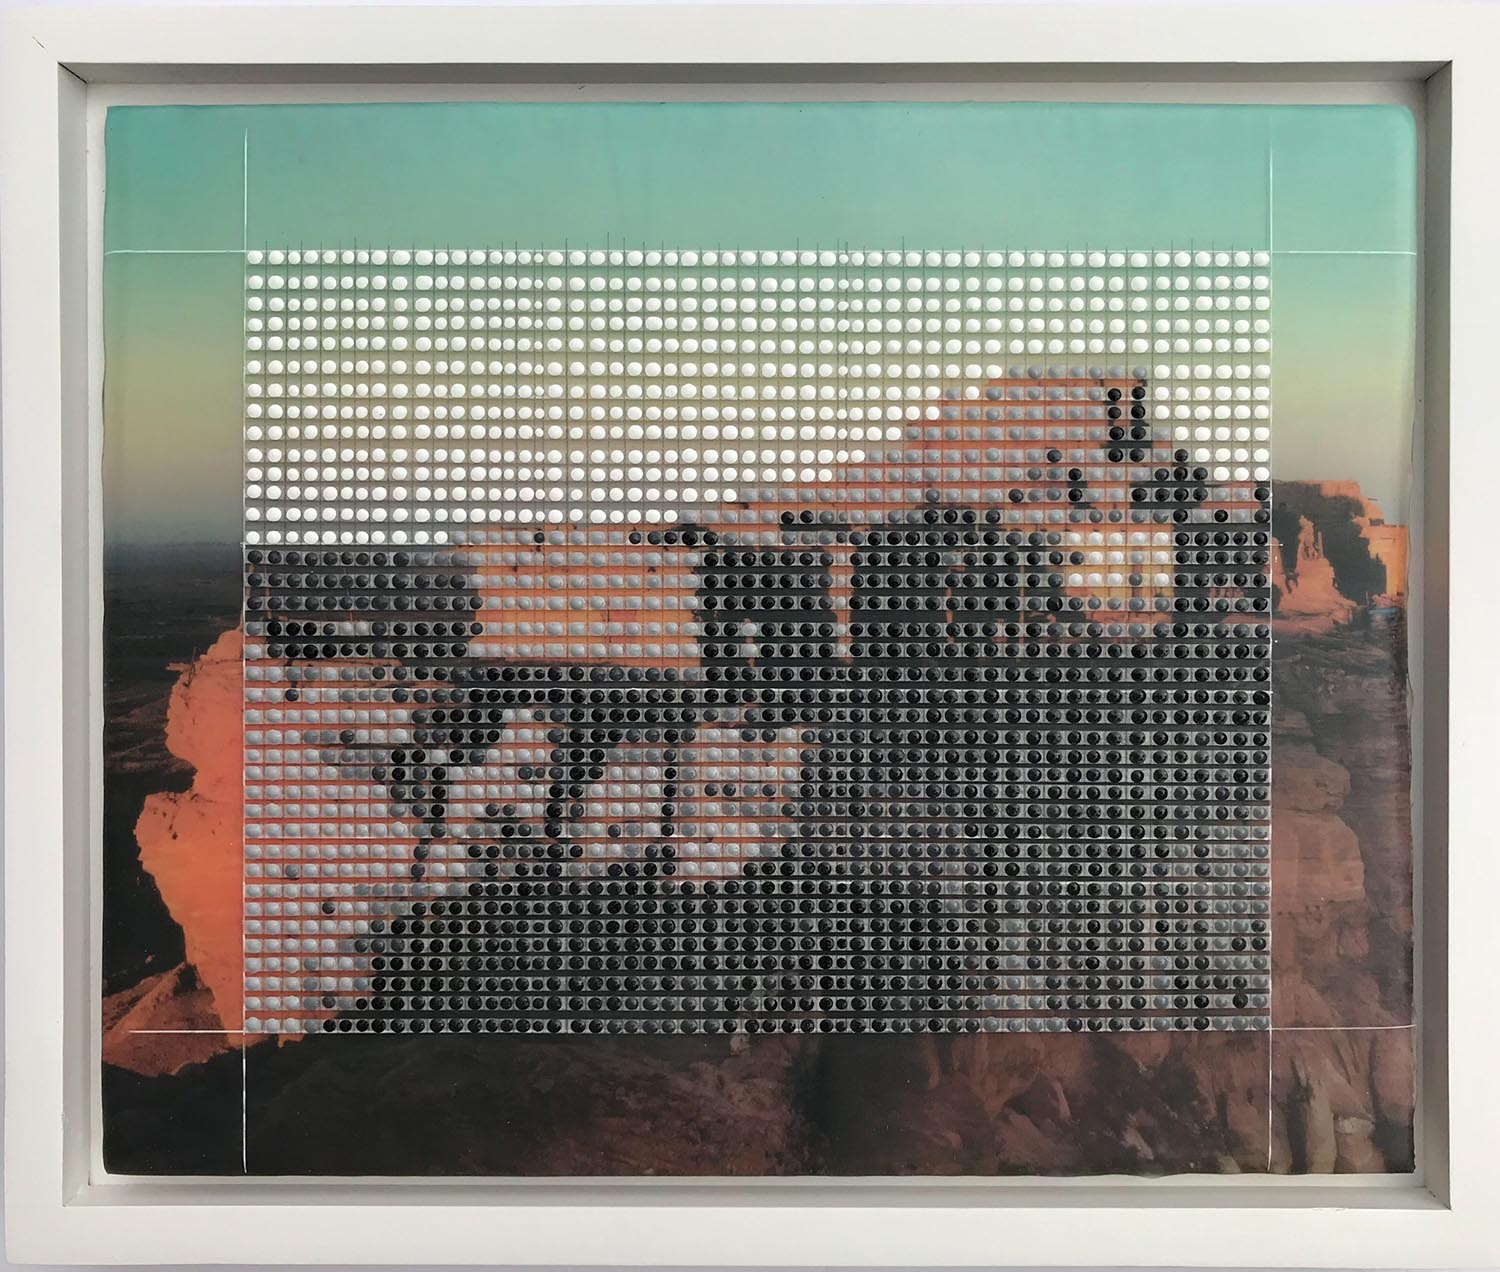 """Walpi, Hopi Villages, First Mesa 1946, Monument Valley, AZ / Borrowed Landscape No.14 / 2018 / 9""""h x 11""""w, framed dimension 10.5""""h x 12.5""""w x 1.25""""d / Painting and collage on panel / Custom framed"""